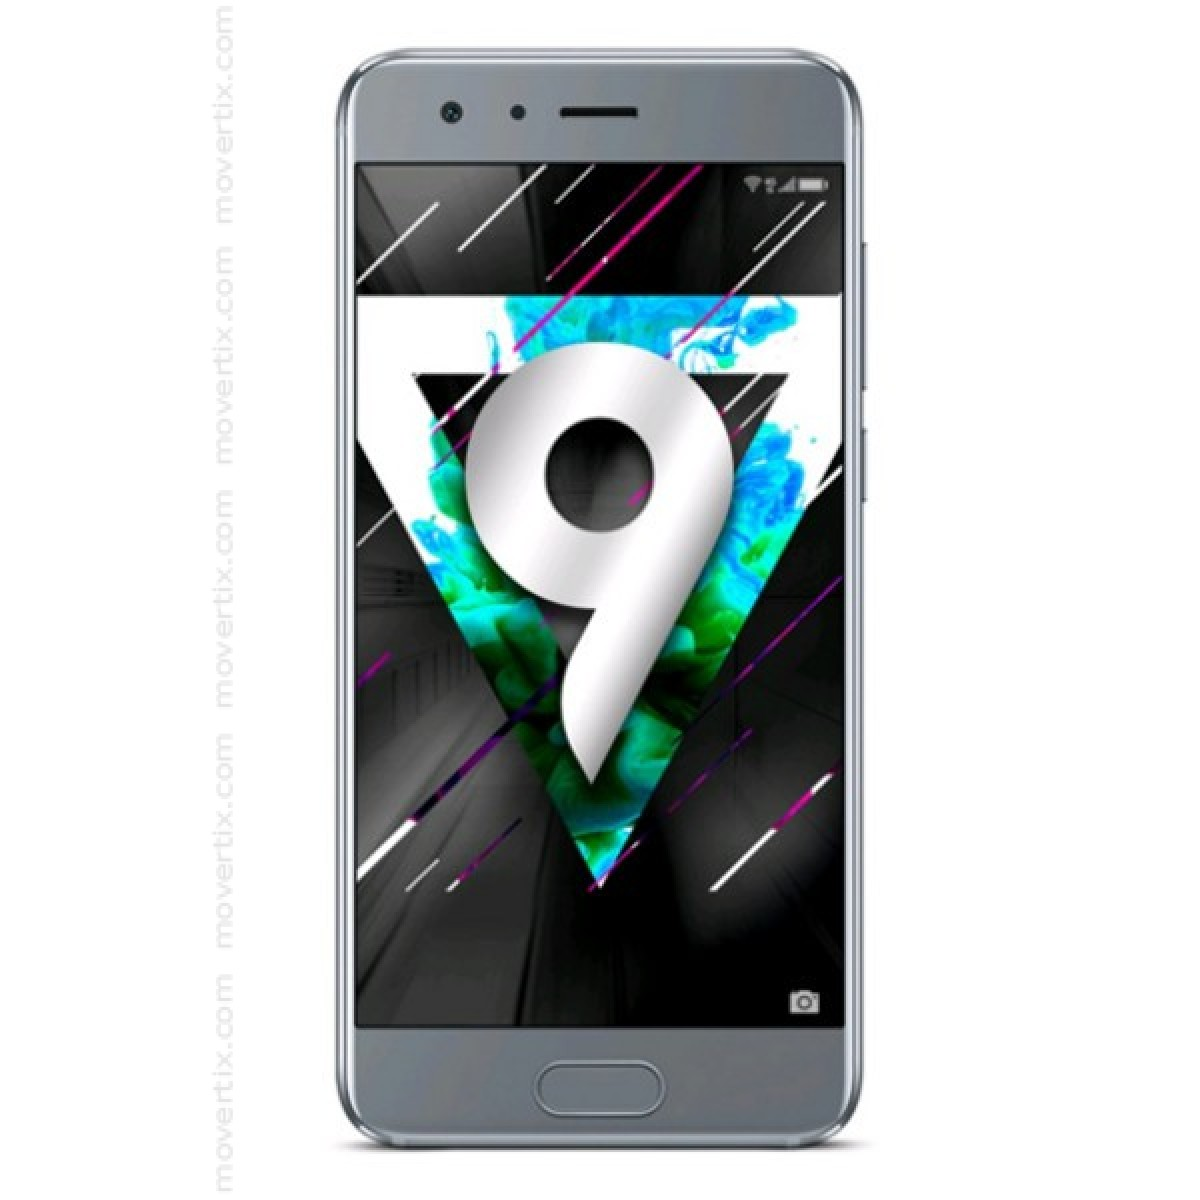 Moviles Libres Blackberry Honor 9 Dual Sim En Gris 6901443185726 Movertix Tienda